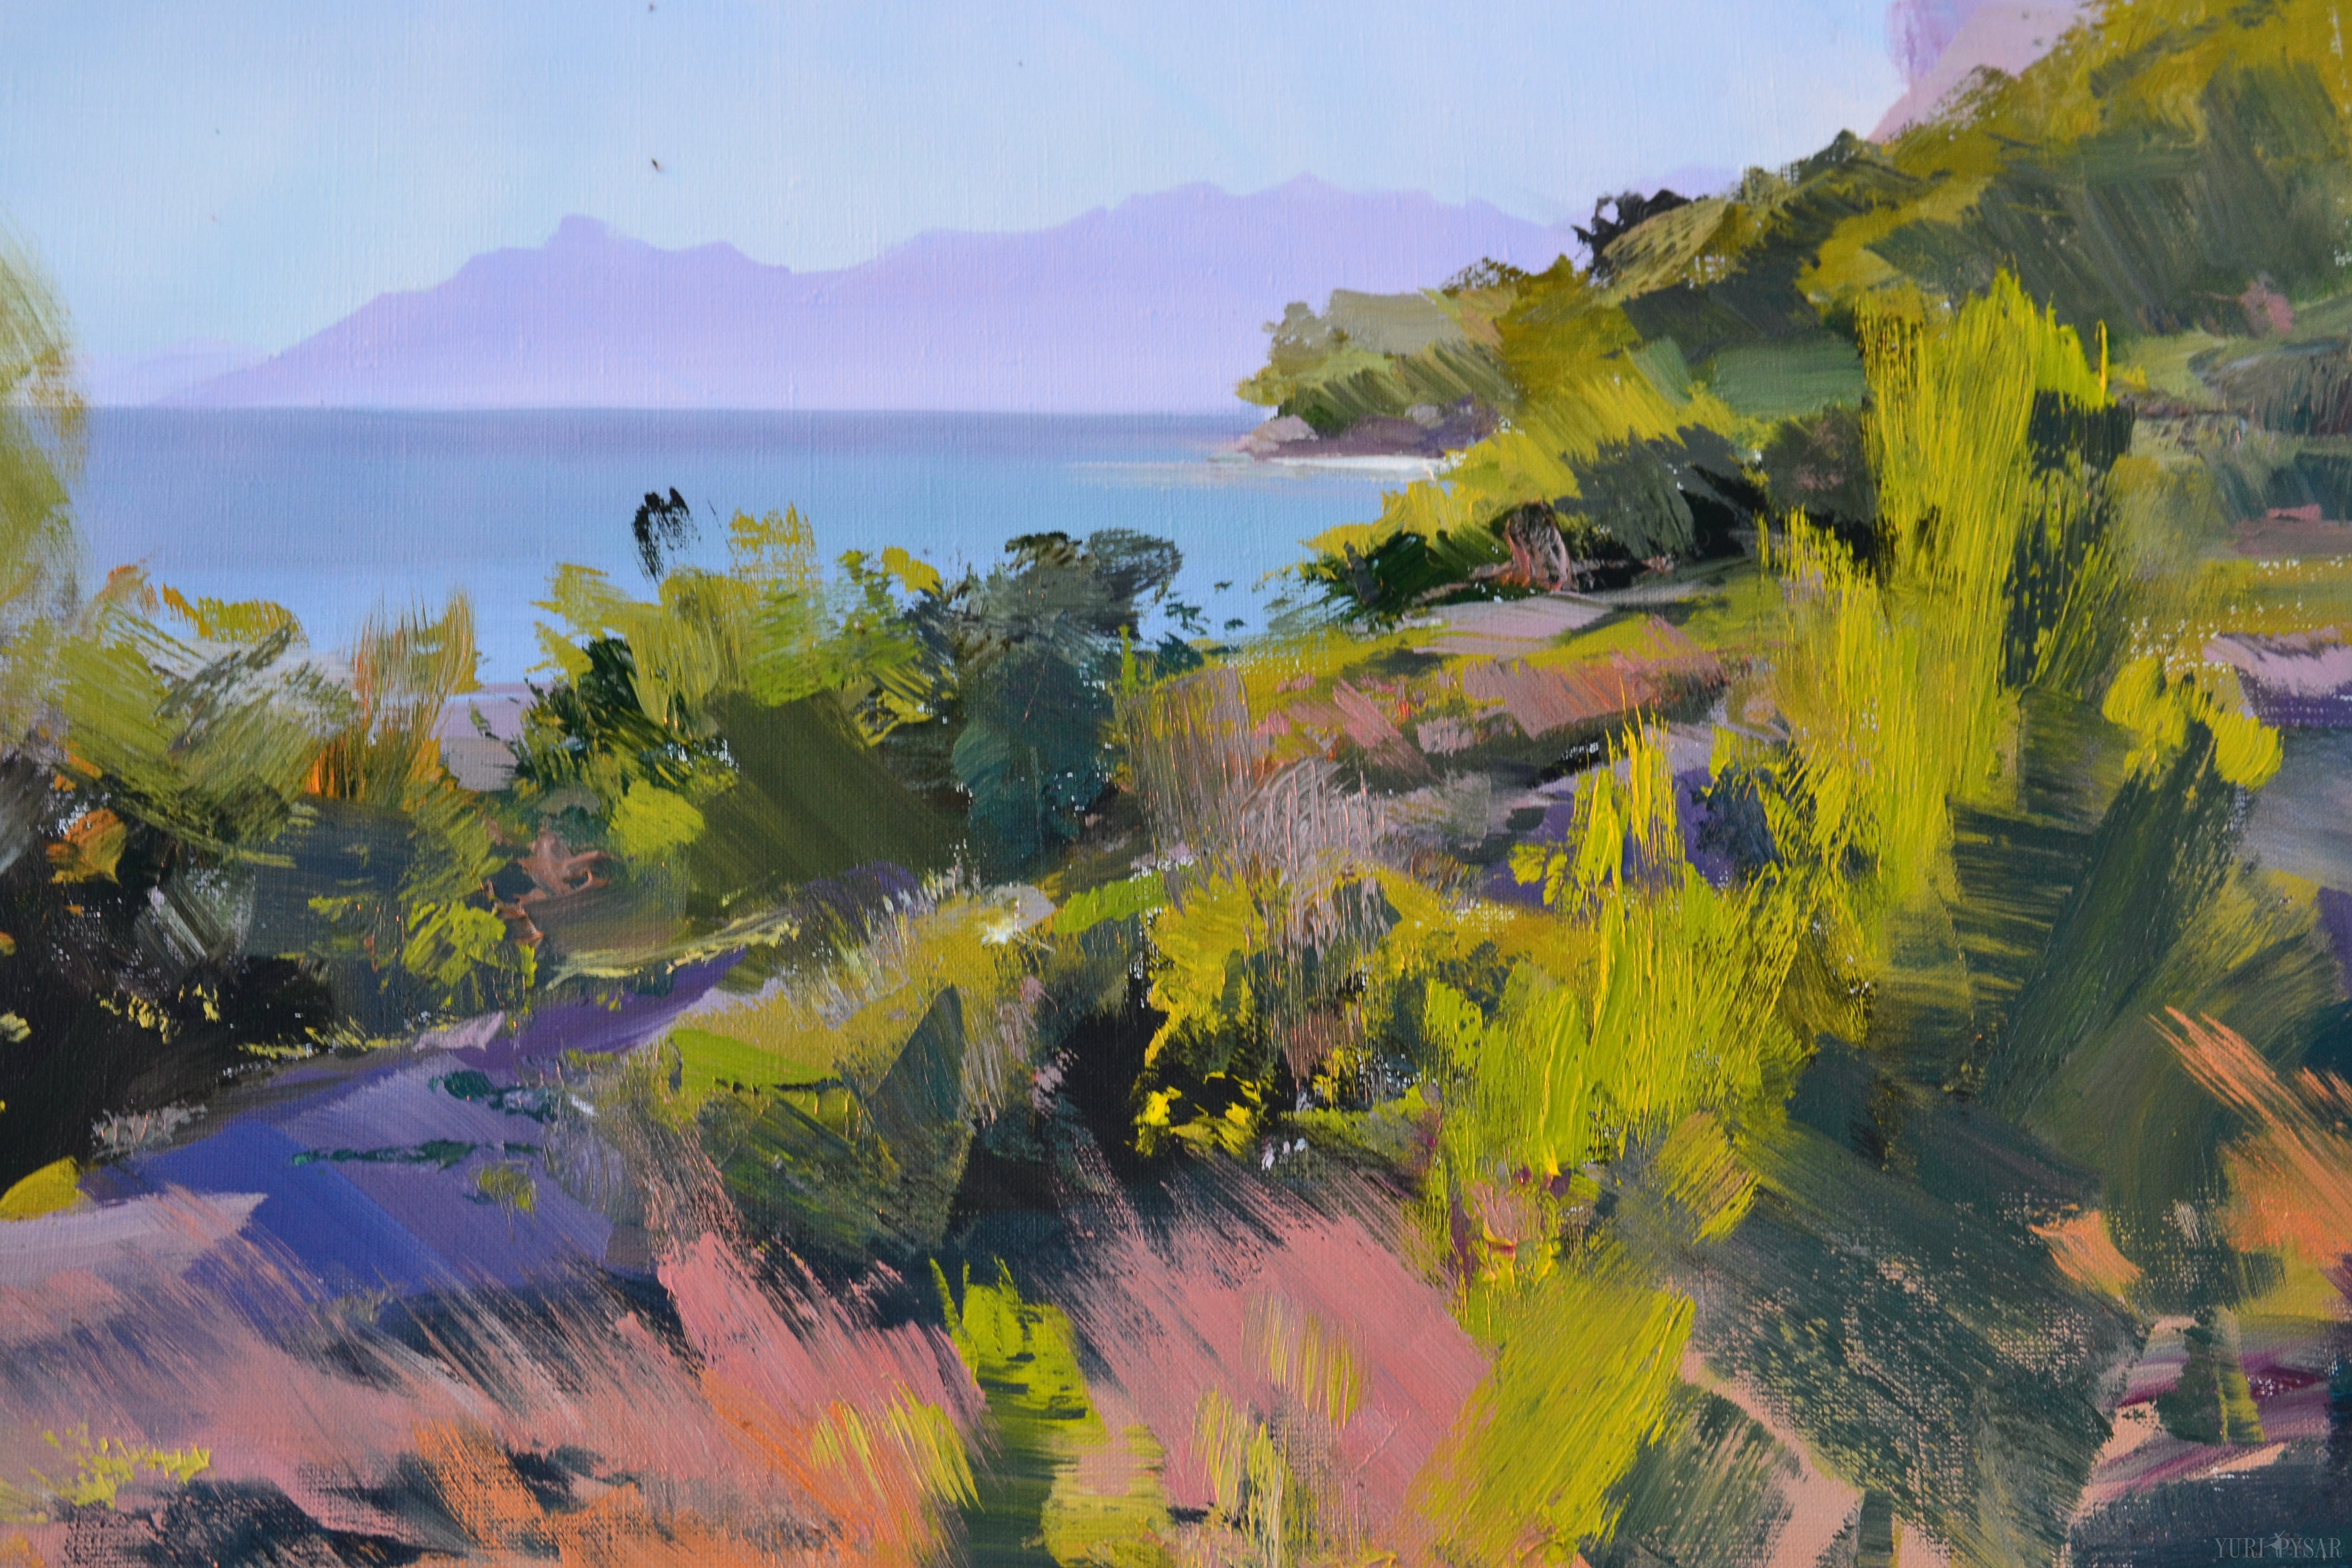 the oil landscape painting created during the plein air in Croatia